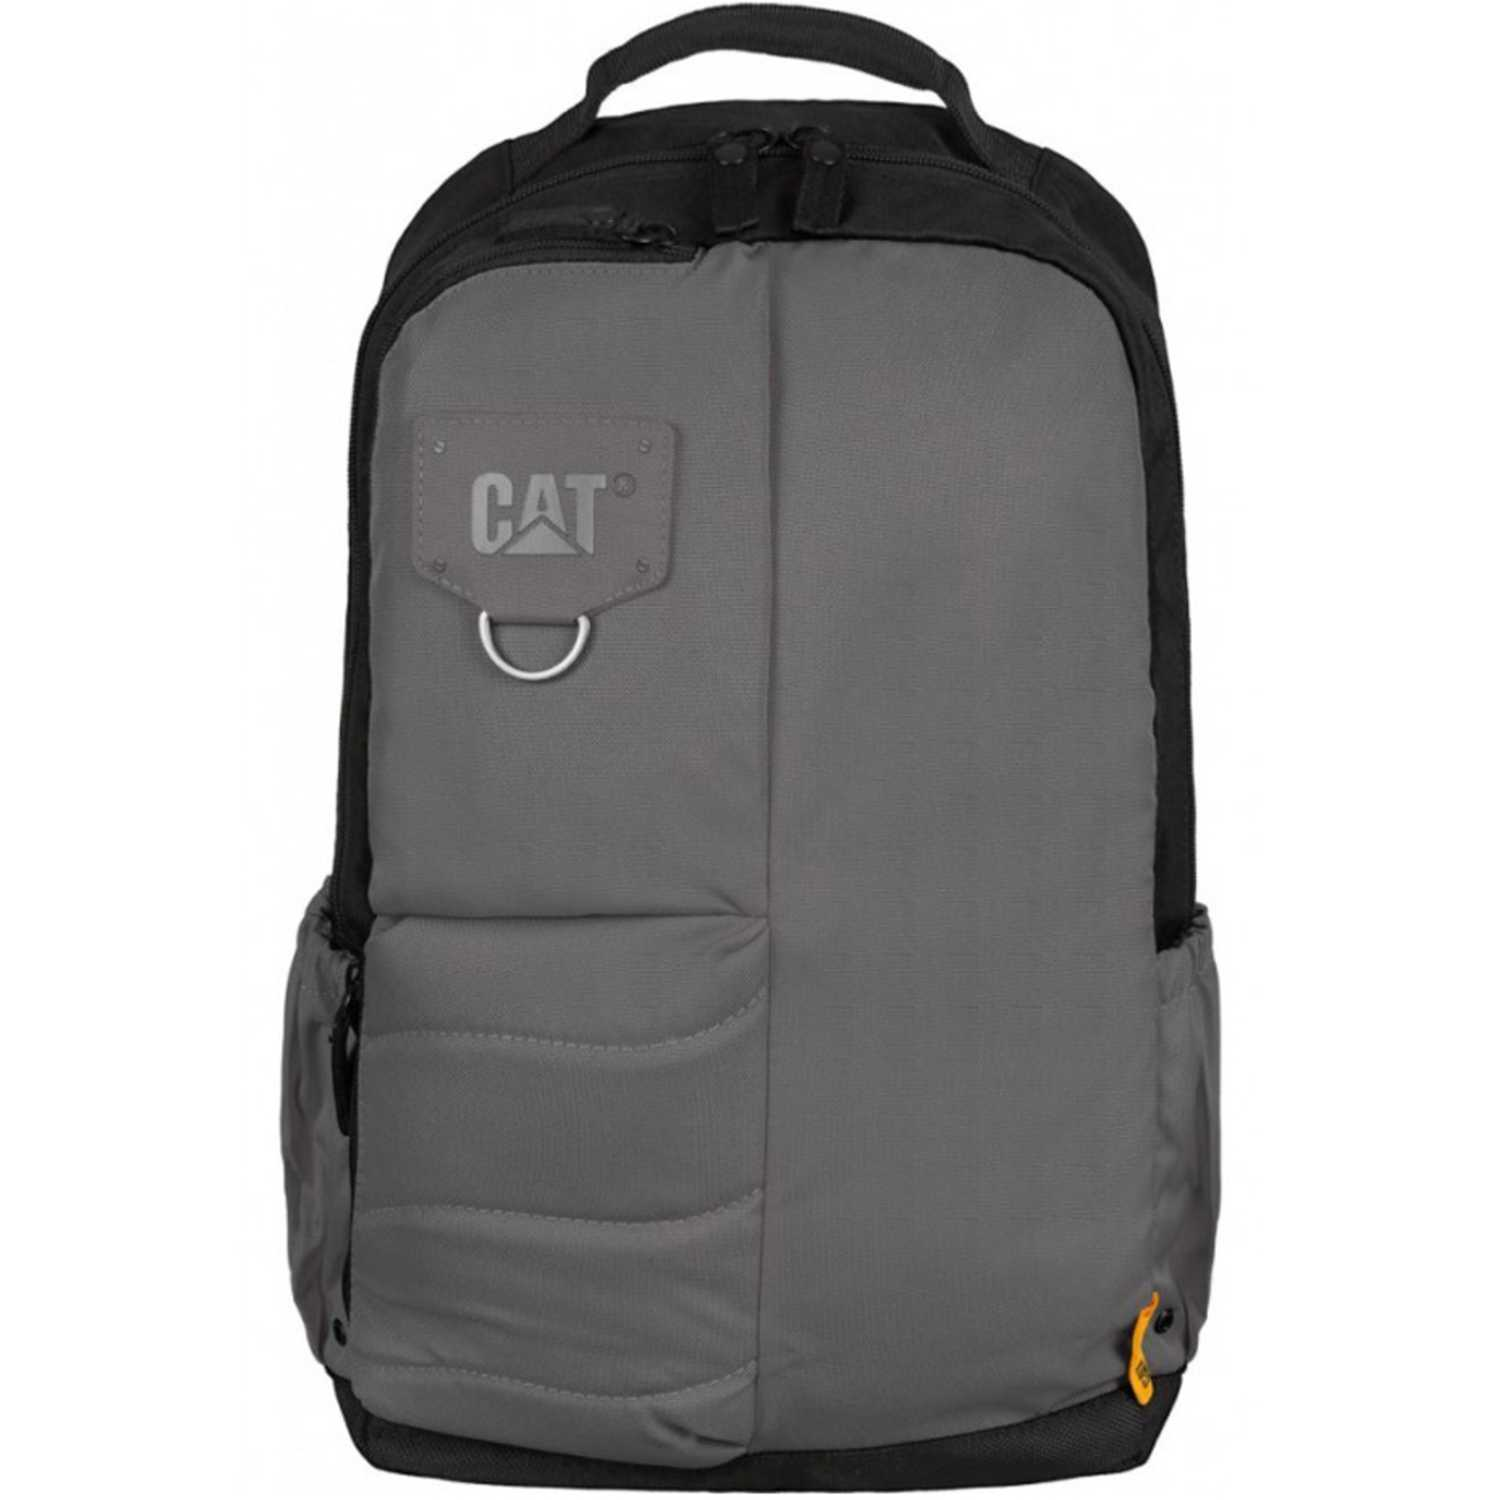 CAT bruce Gris / negro Mochilas Multipropósitos